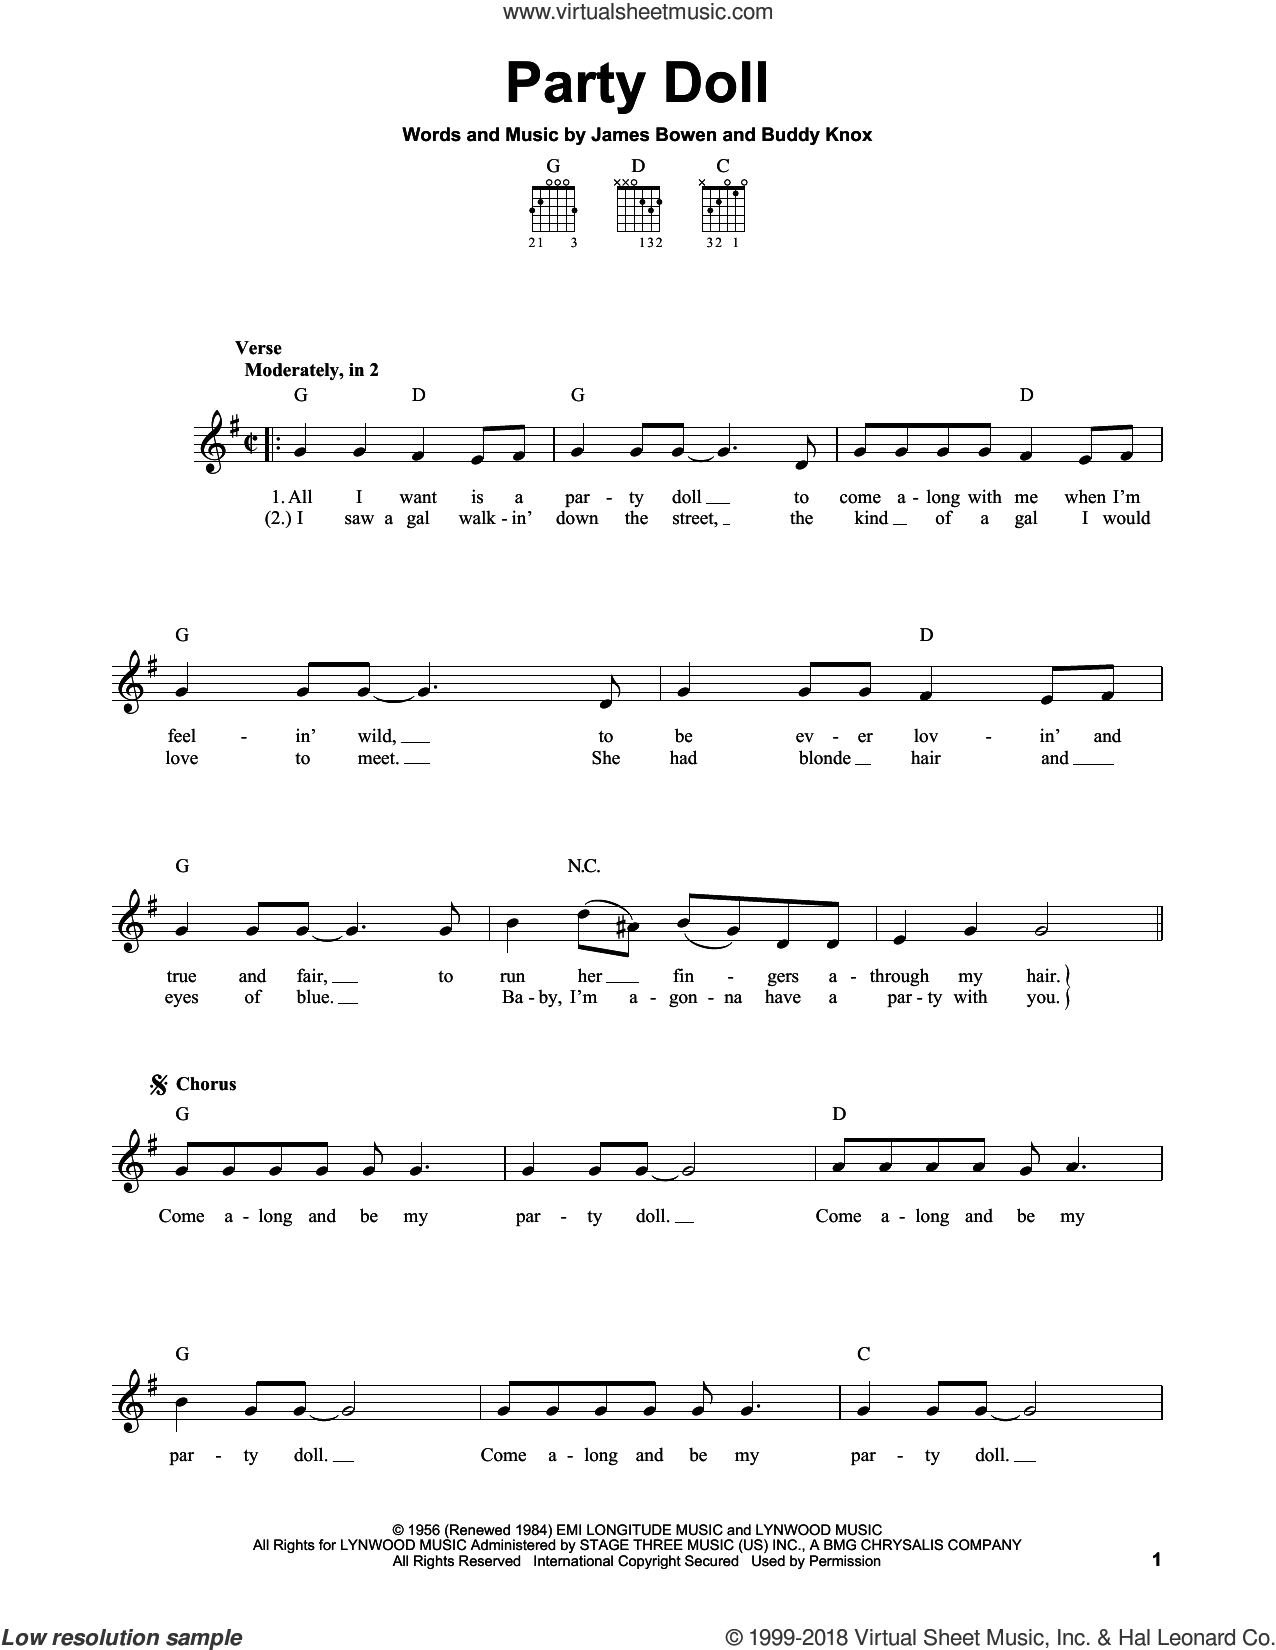 Party Doll sheet music for guitar solo (chords) by James Bowen and Buddy Knox. Score Image Preview.